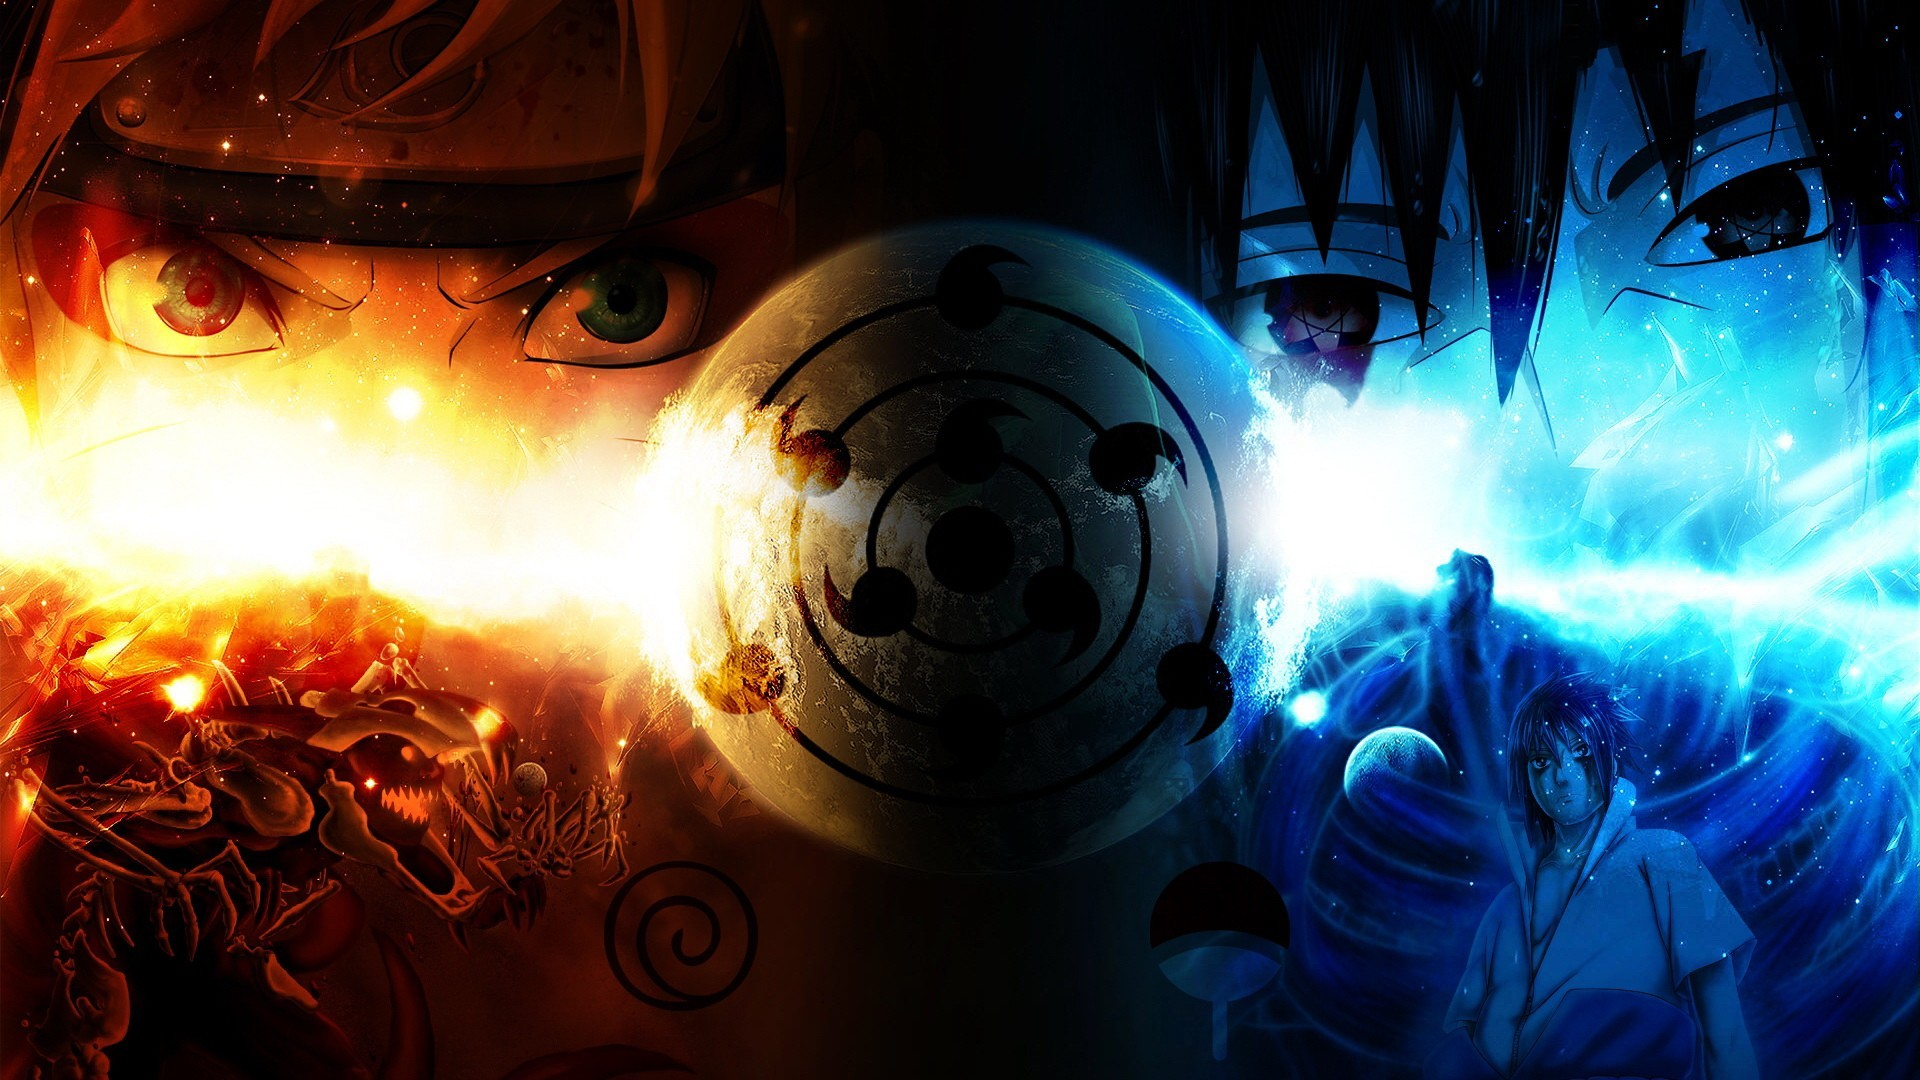 Free A26 Naruto anime Shippuden HD Desktop background wallpapers downloads